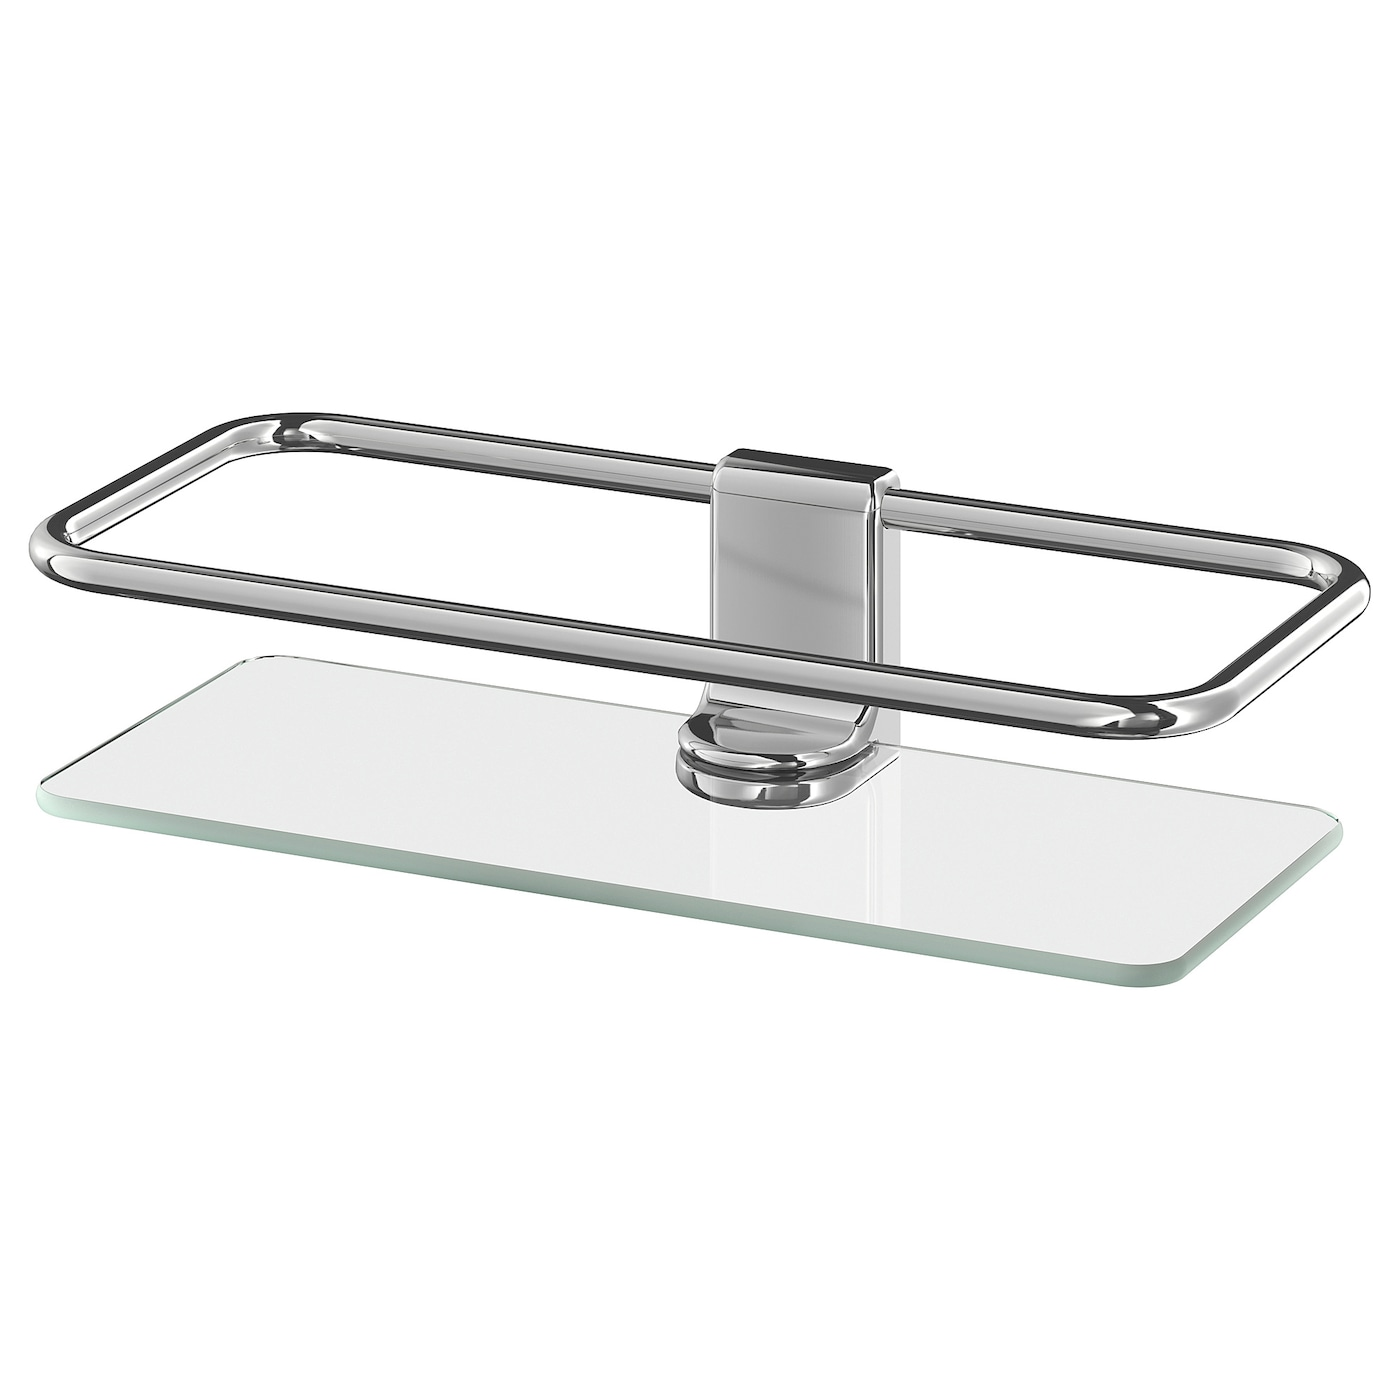 IKEA KALKGRUND shower shelf Tempered glass - extra resistant to heat, impact and heavy loads.